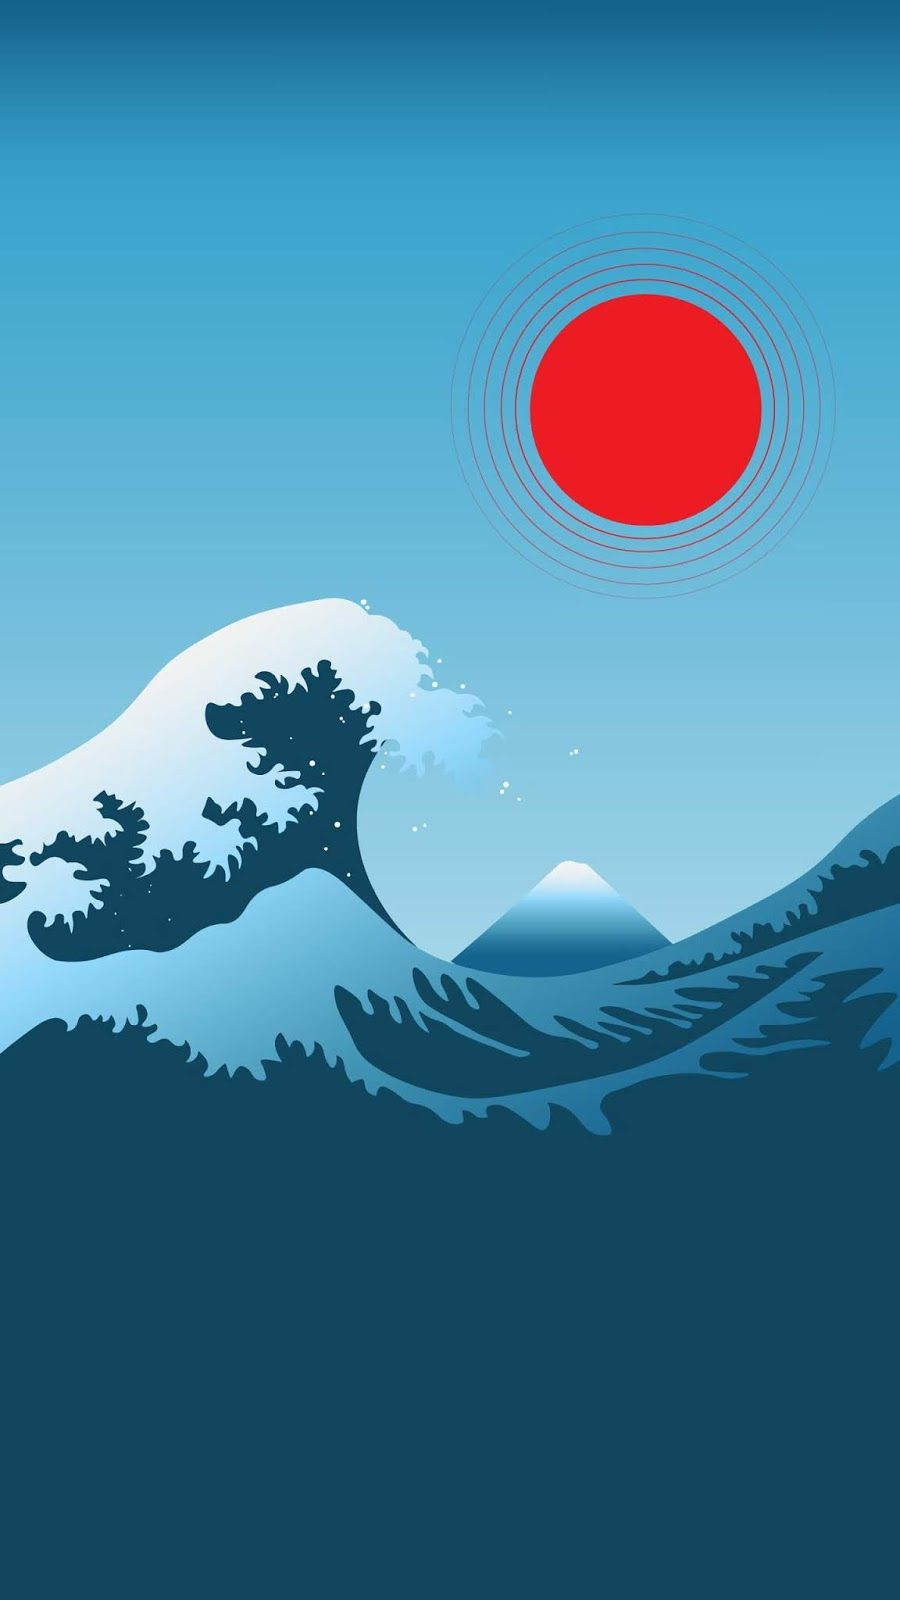 Minimalism Great Wave Off Kanagawa Wallpaper Iphone Android Background Followme Waves Wallpaper Iphone Waves Wallpaper Aesthetic Iphone Wallpaper